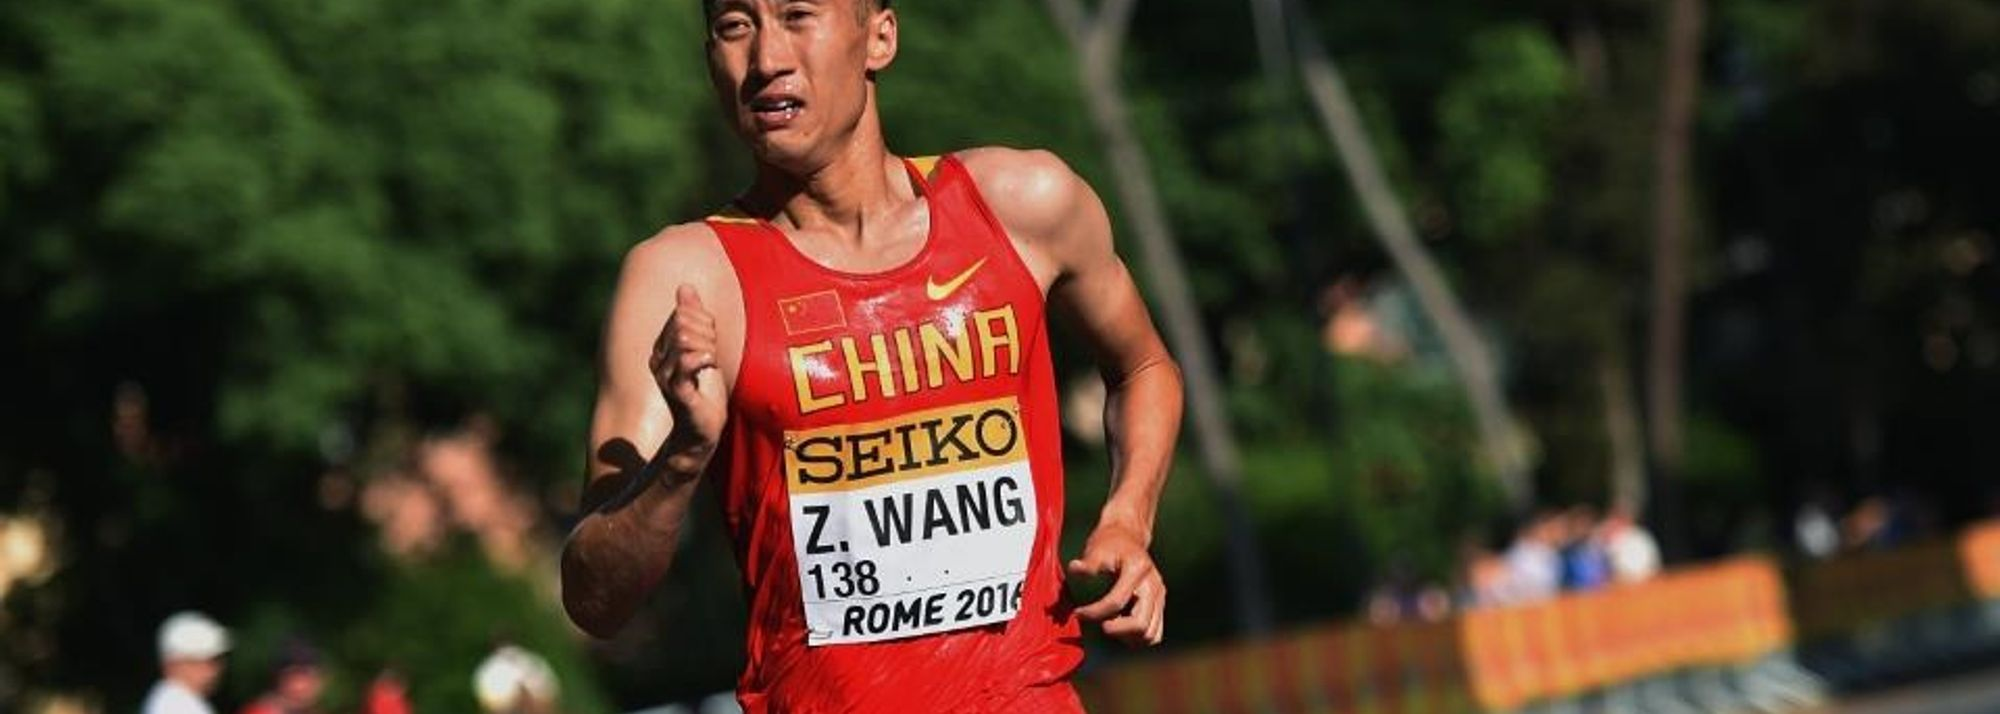 When it mattered, the pedigree of Wang Zhen shone through for an emphatic 20km gold at the IAAF World Race Walking Team Championships Rome 2016.